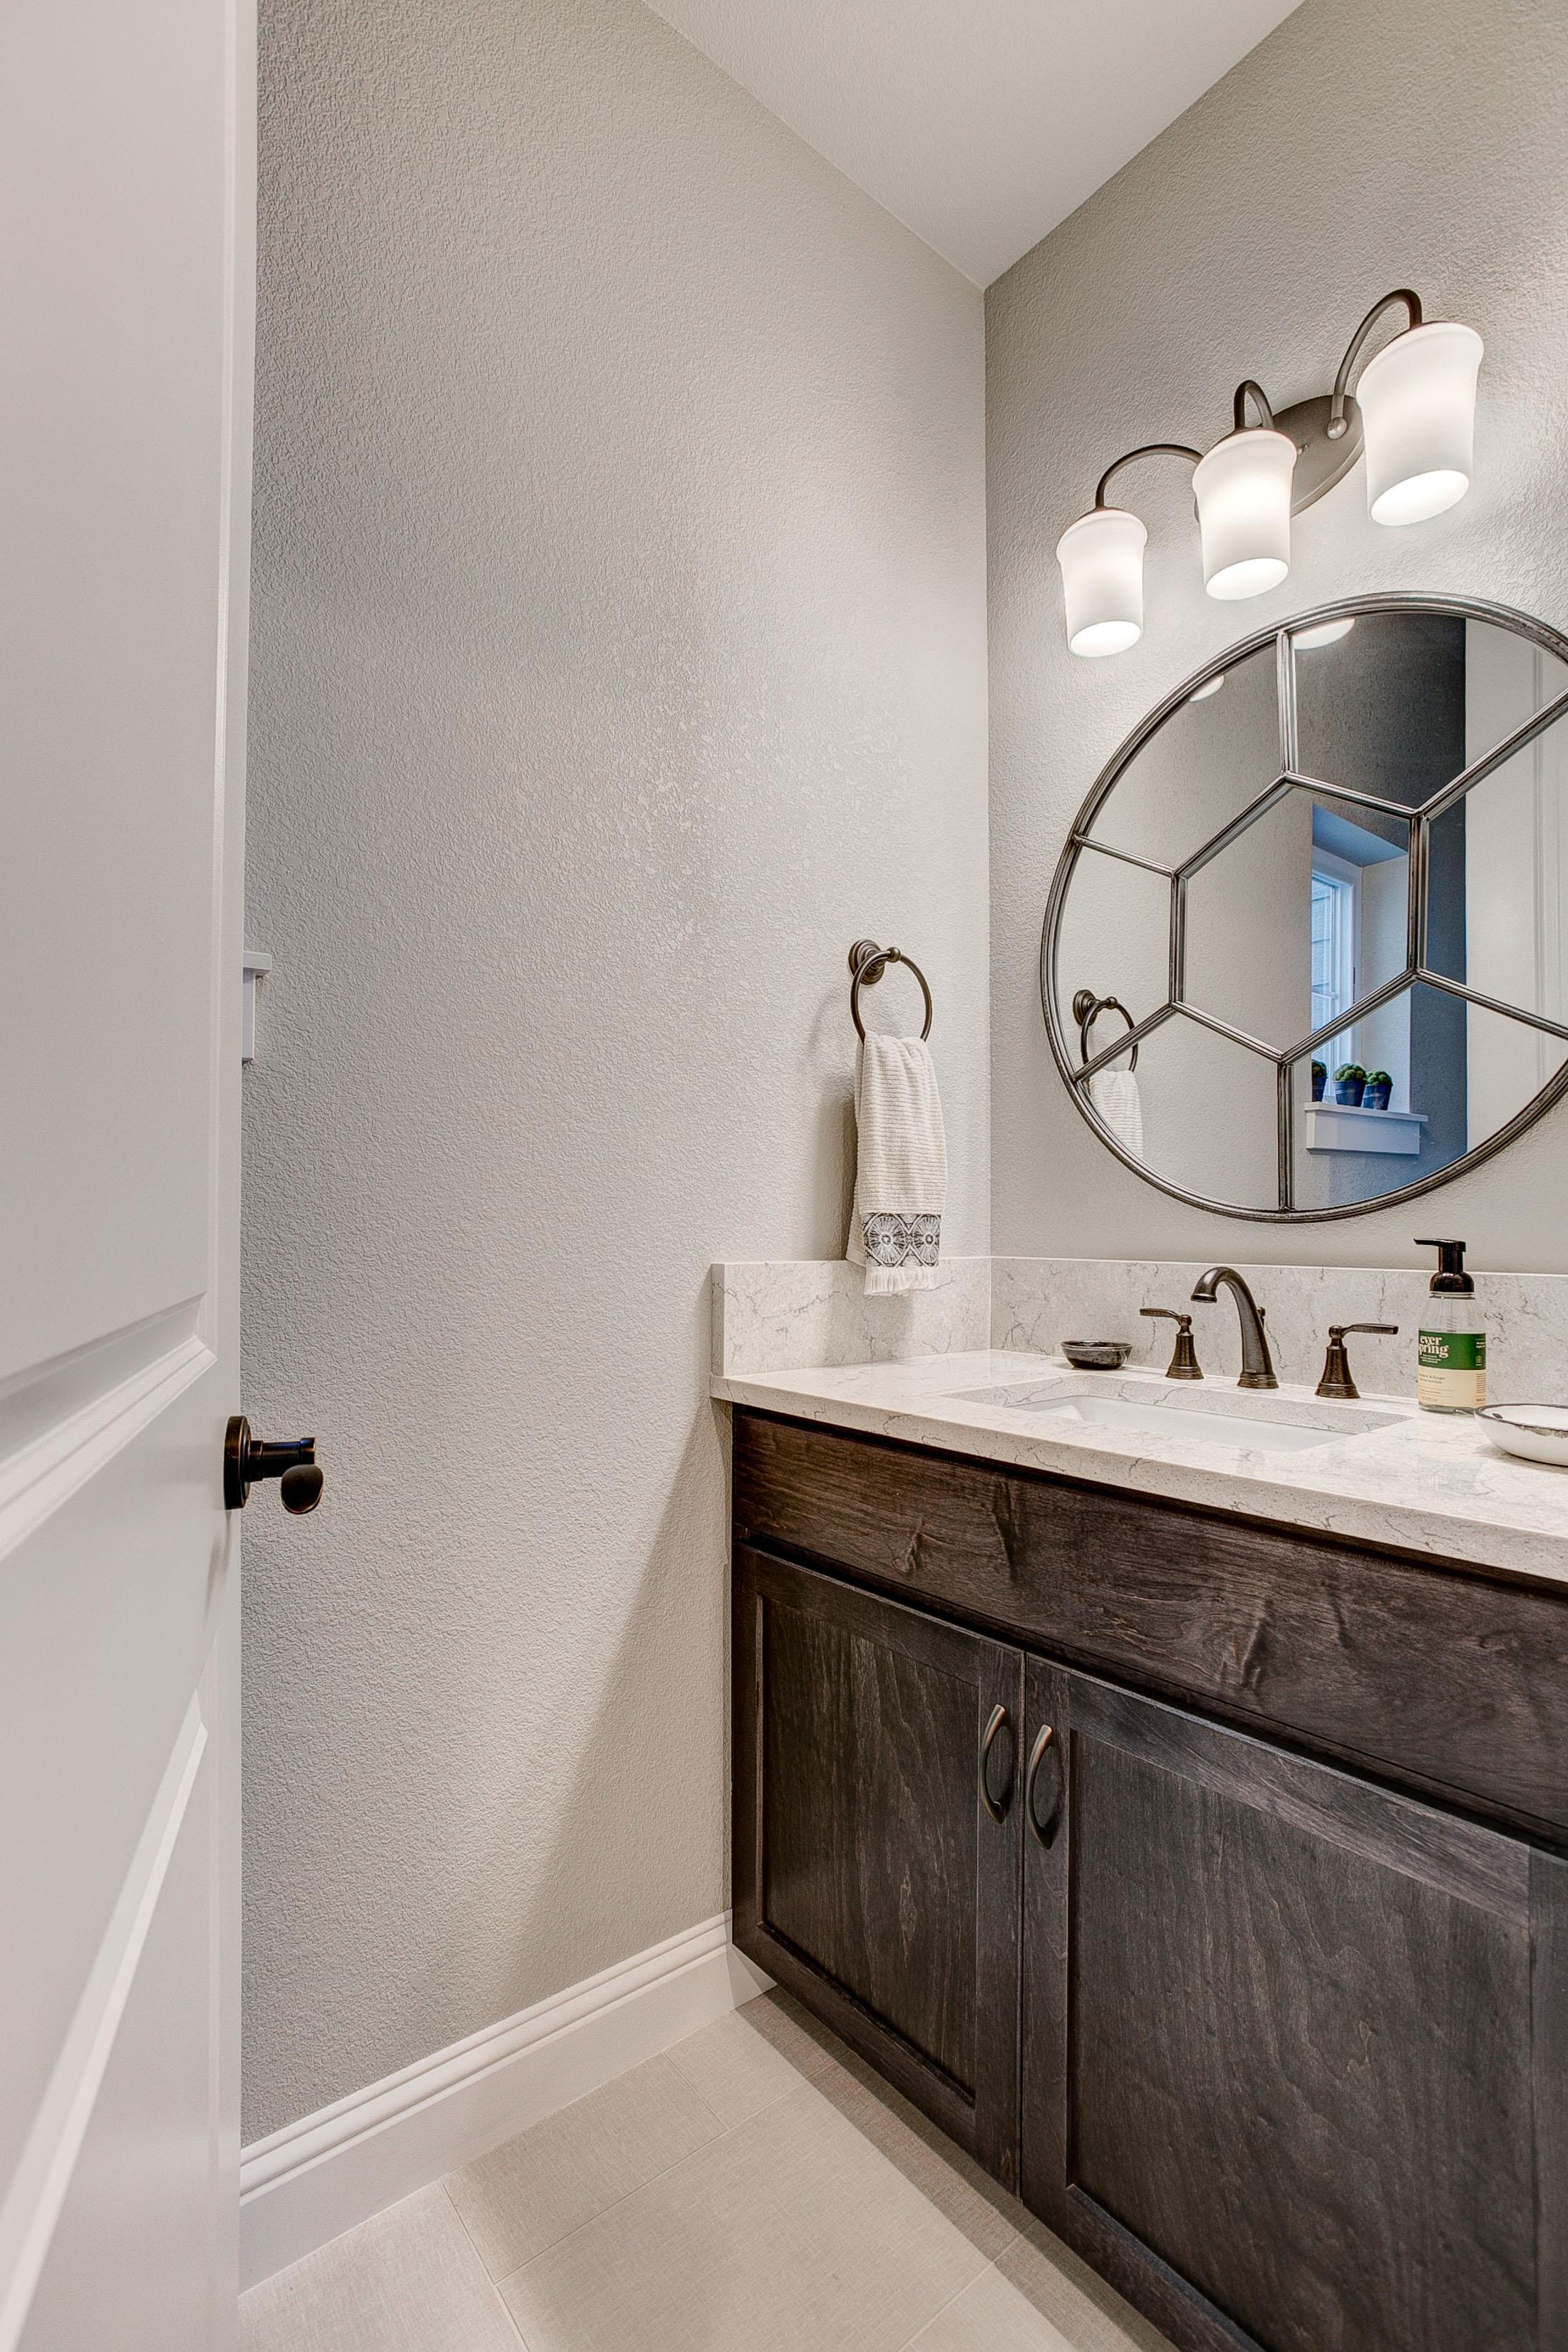 Bathroom featured in the Summerlin By Landmark Homes - CO in Fort Collins-Loveland, CO